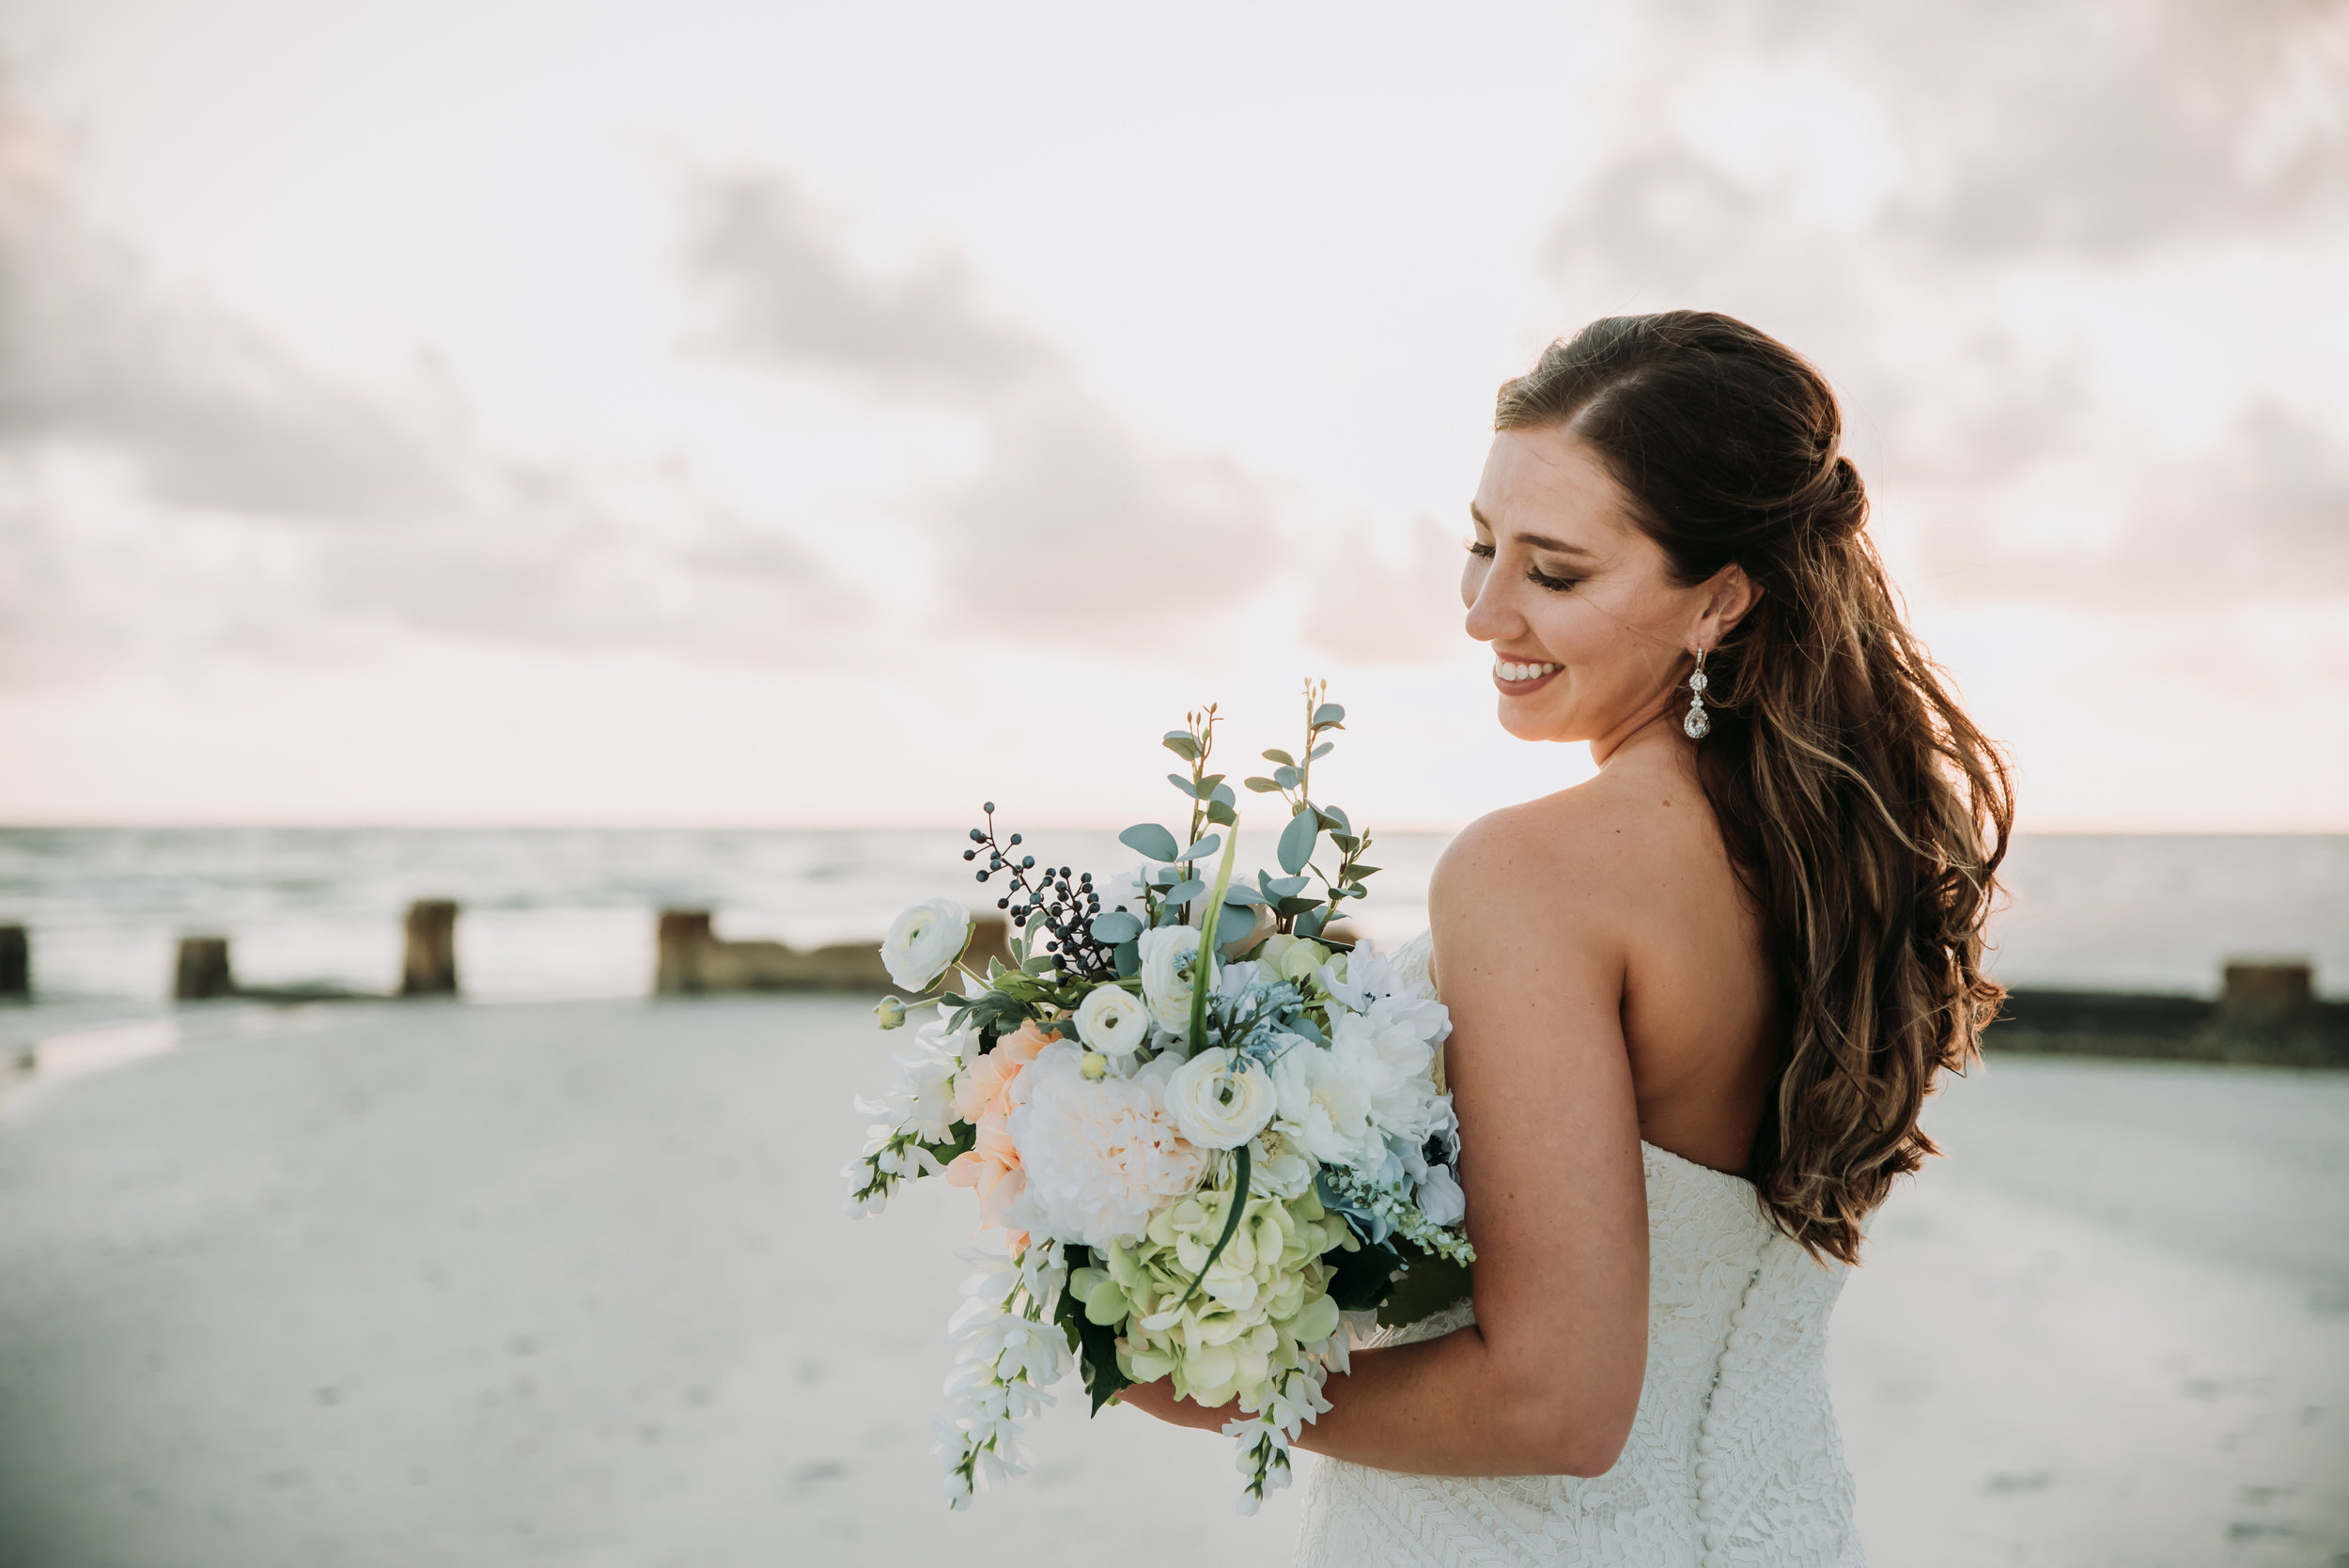 honeymoonislandbeachweddingFLbeachesFLbeachweddingbeachweddingtampaweddings-647.jpg